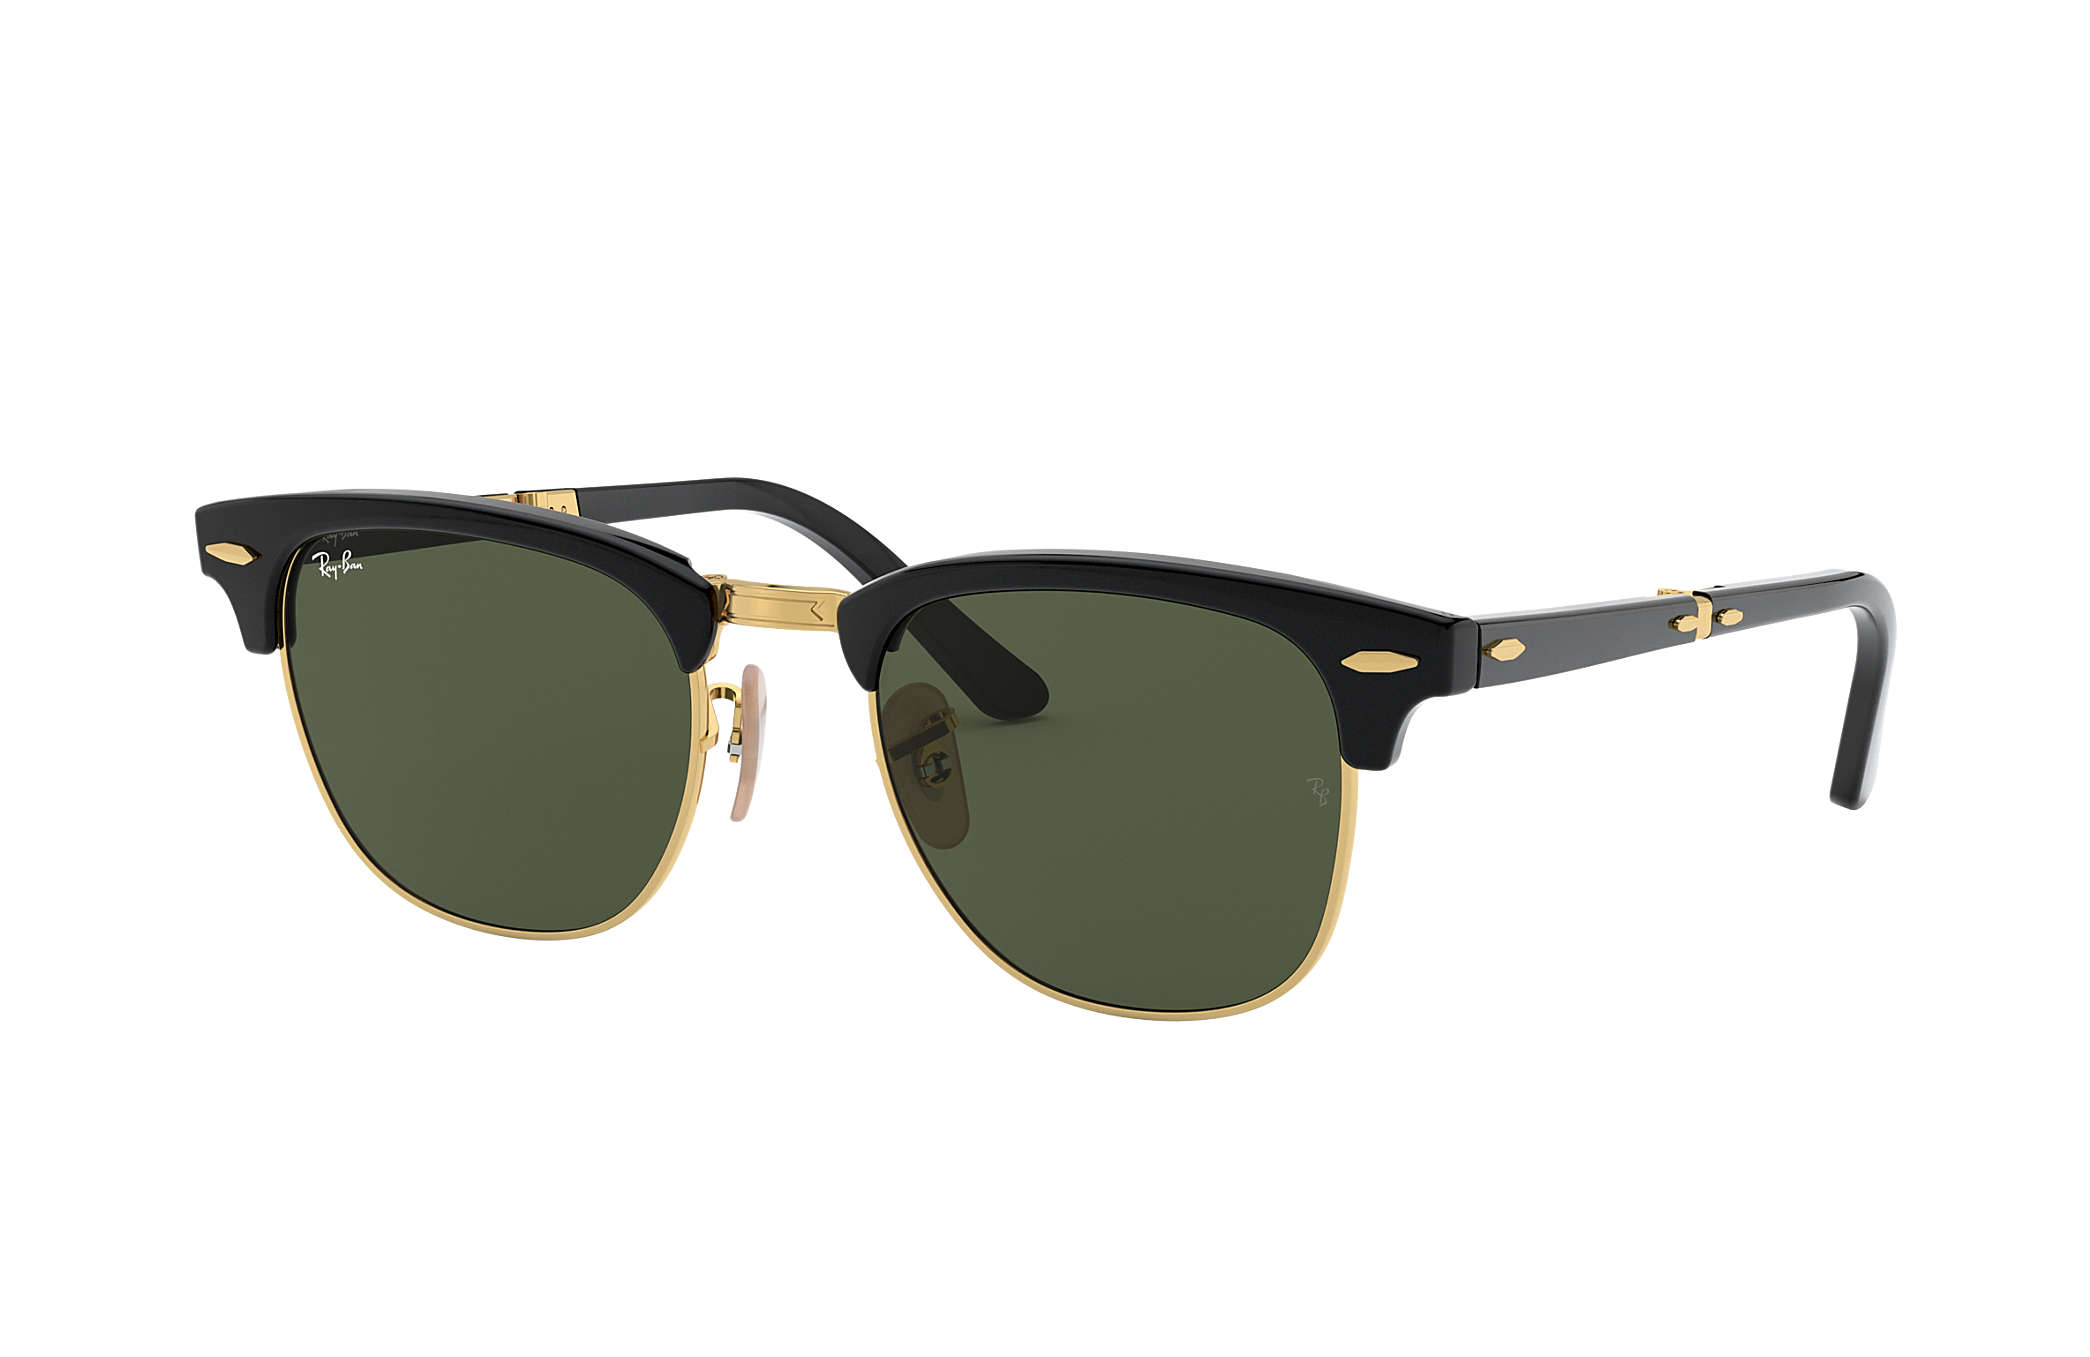 a8d4049e87af1 Ray-Ban Clubmaster Folding RB2176 Black - Acetate - Green Lenses ...